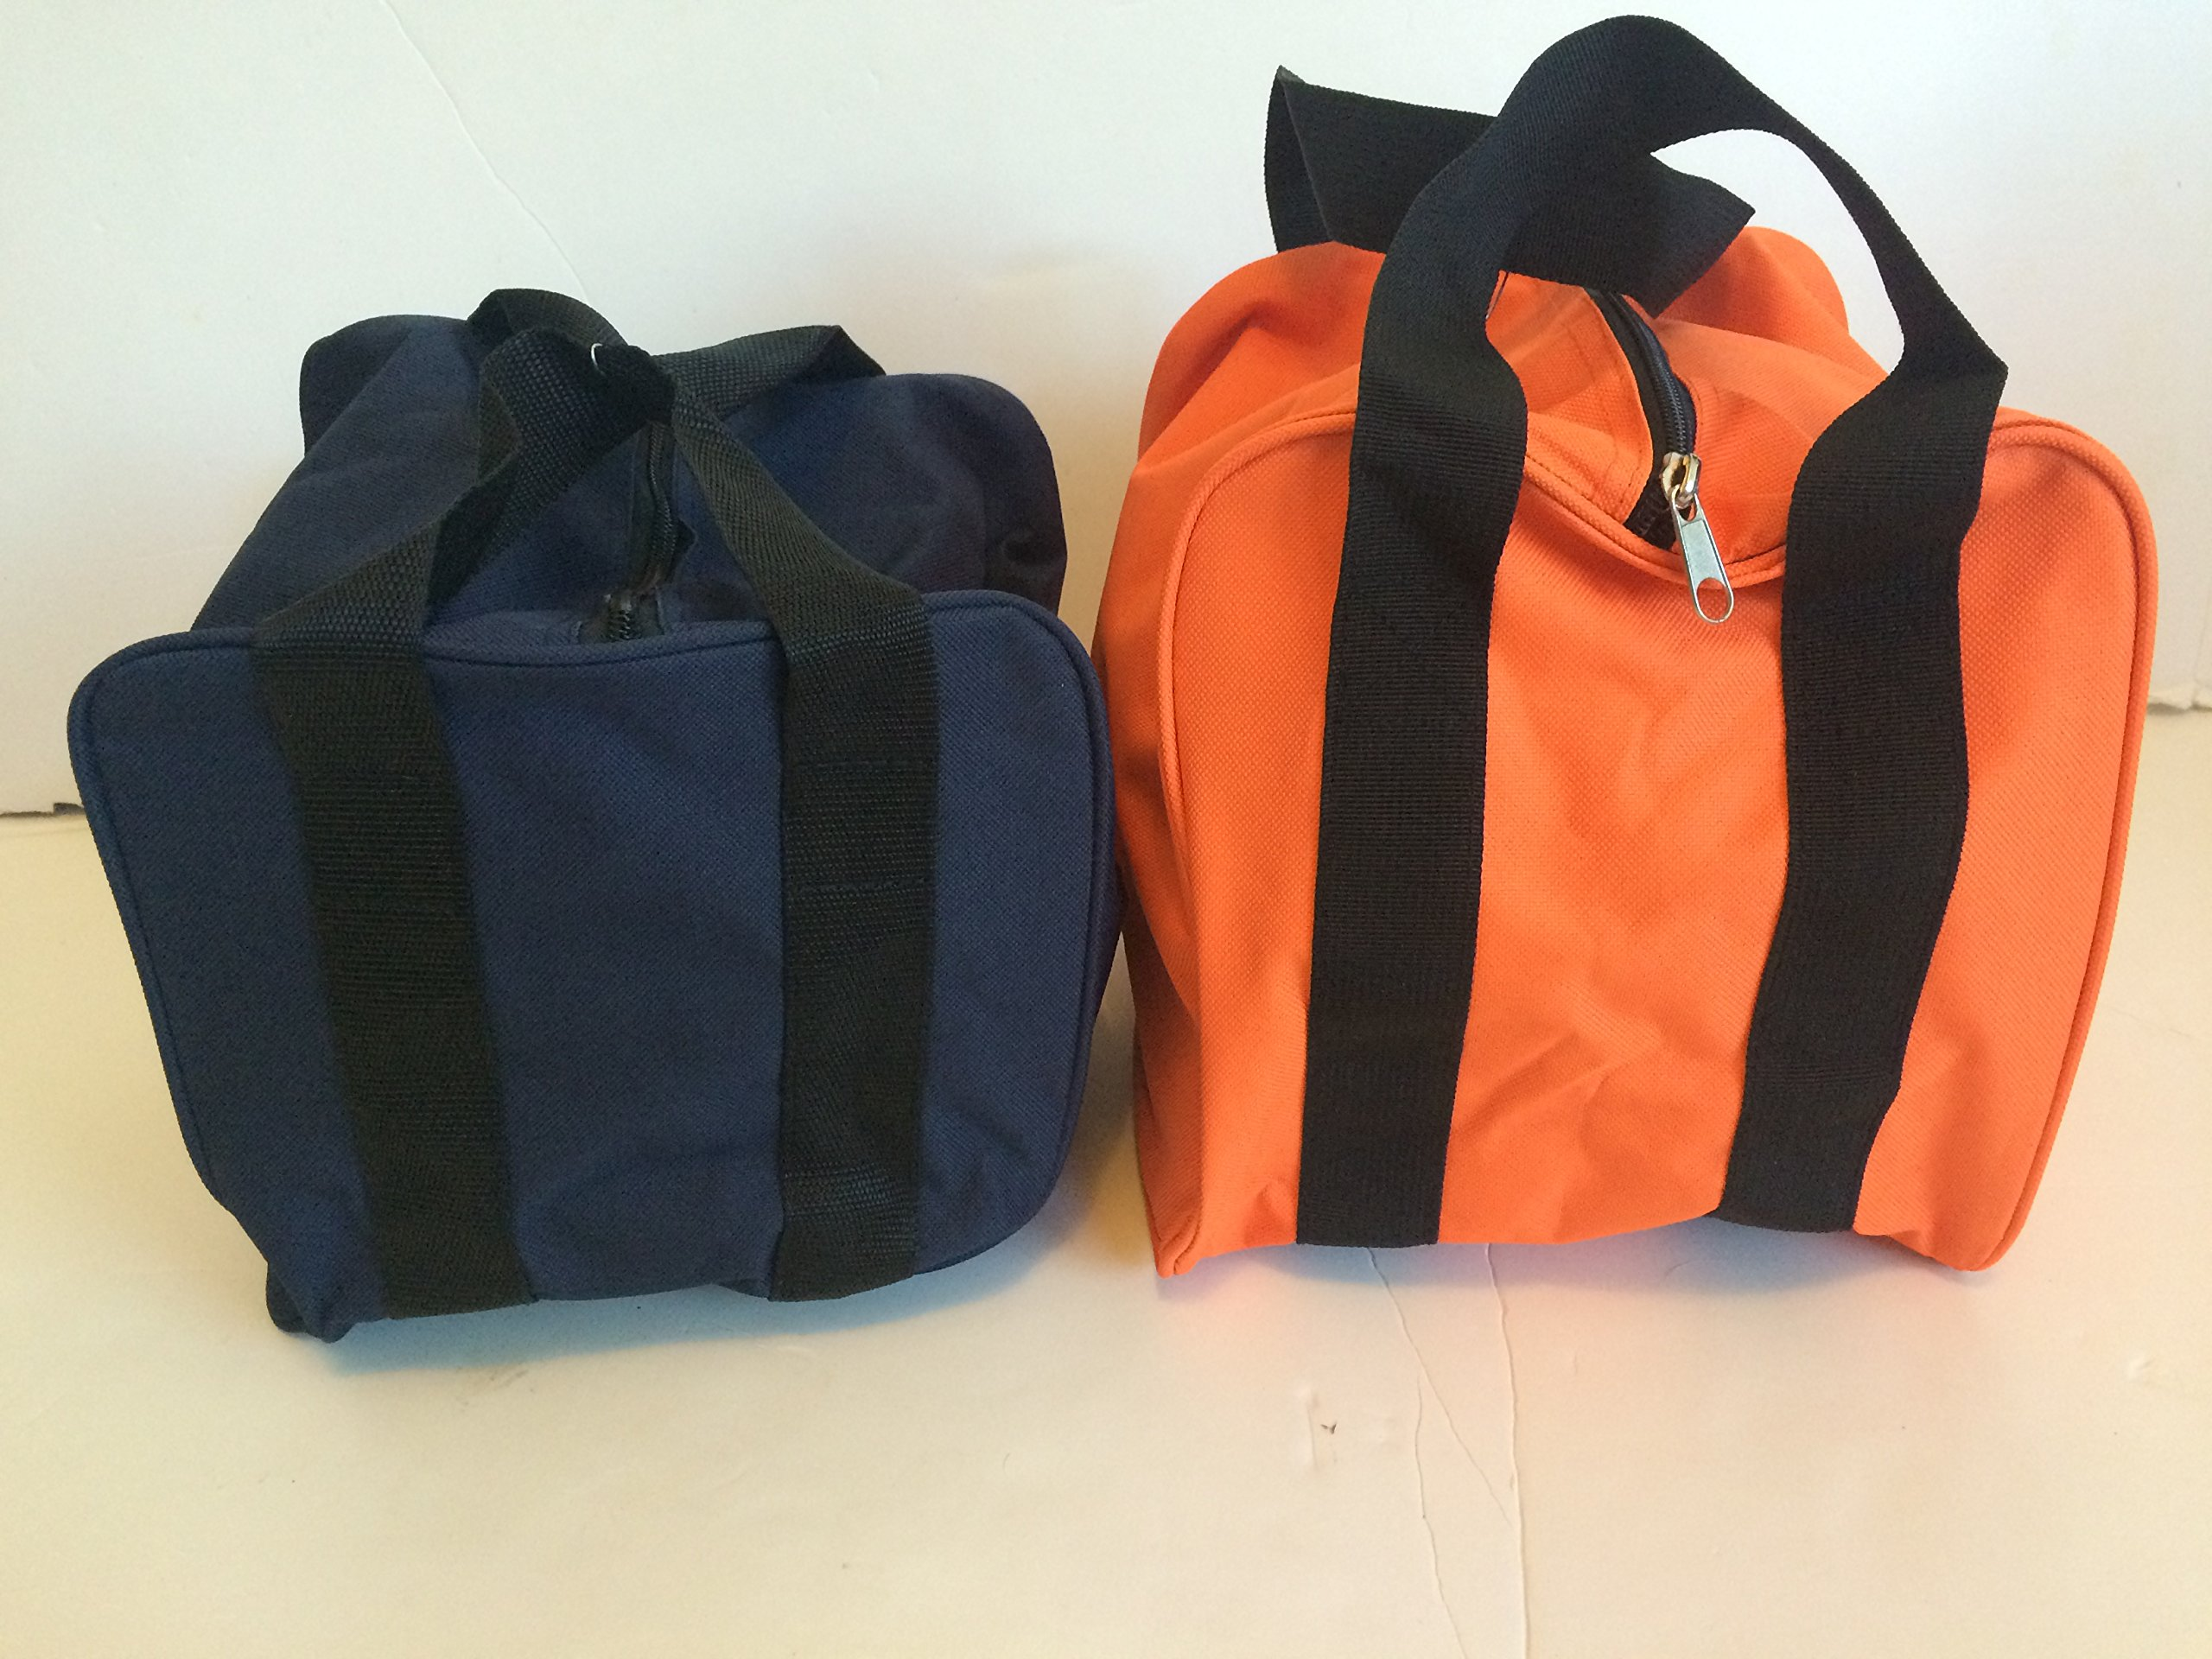 Unique Package - Pack of 2 Extra Heavy Duty Nylon Bocce Bags - Blue with Black Handles andOrange with Black Handles